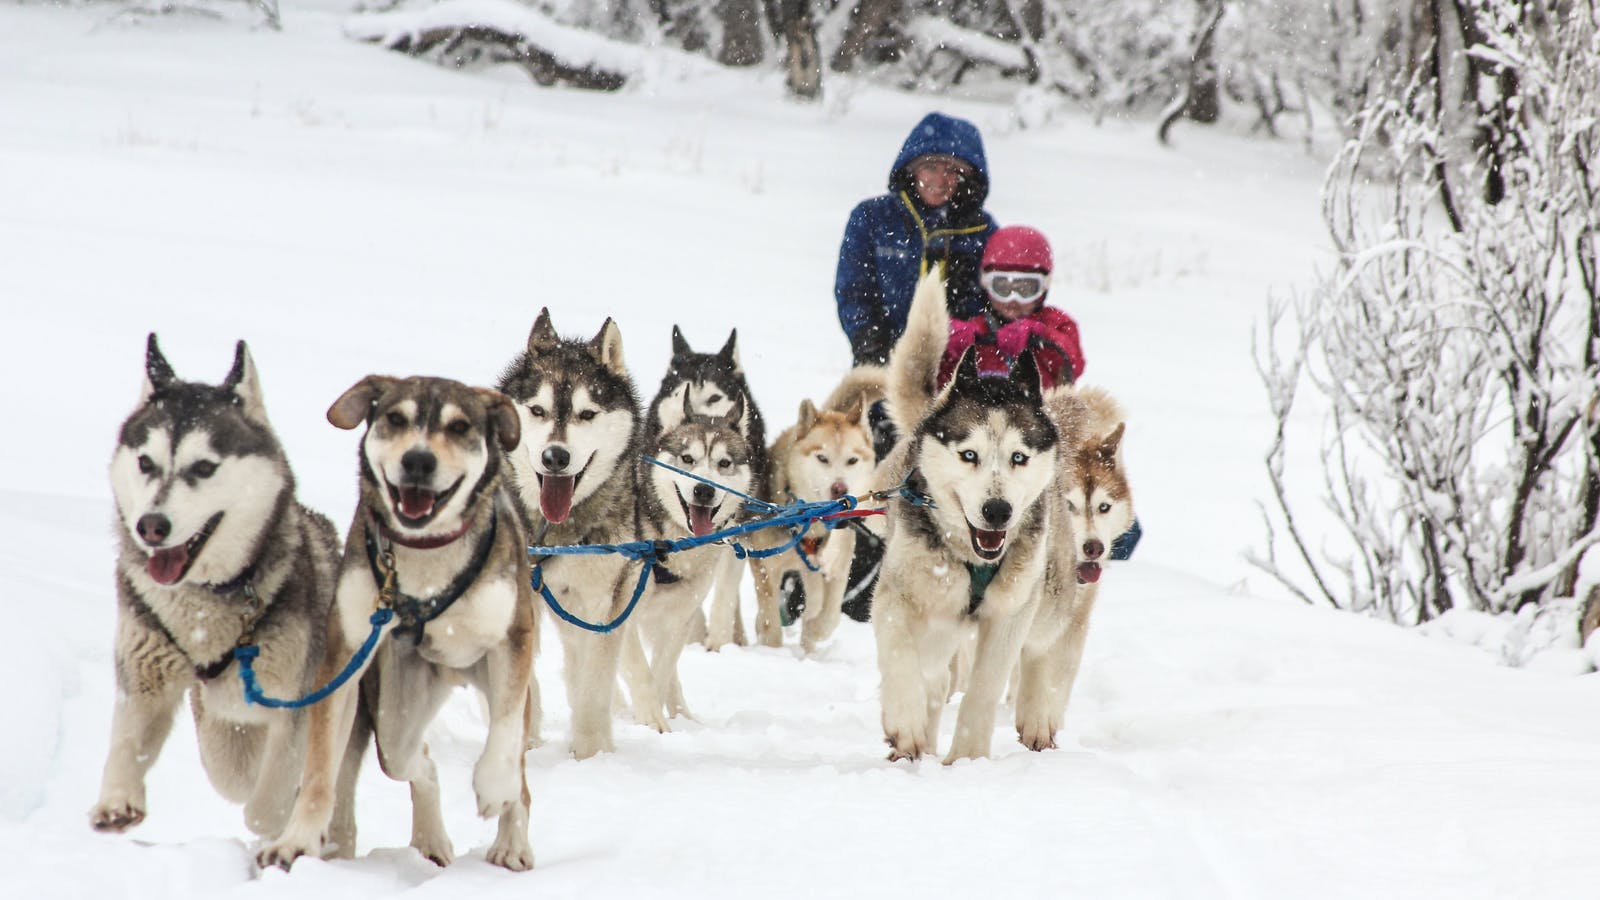 Dinner Plain's sled dogs are not to be missed!